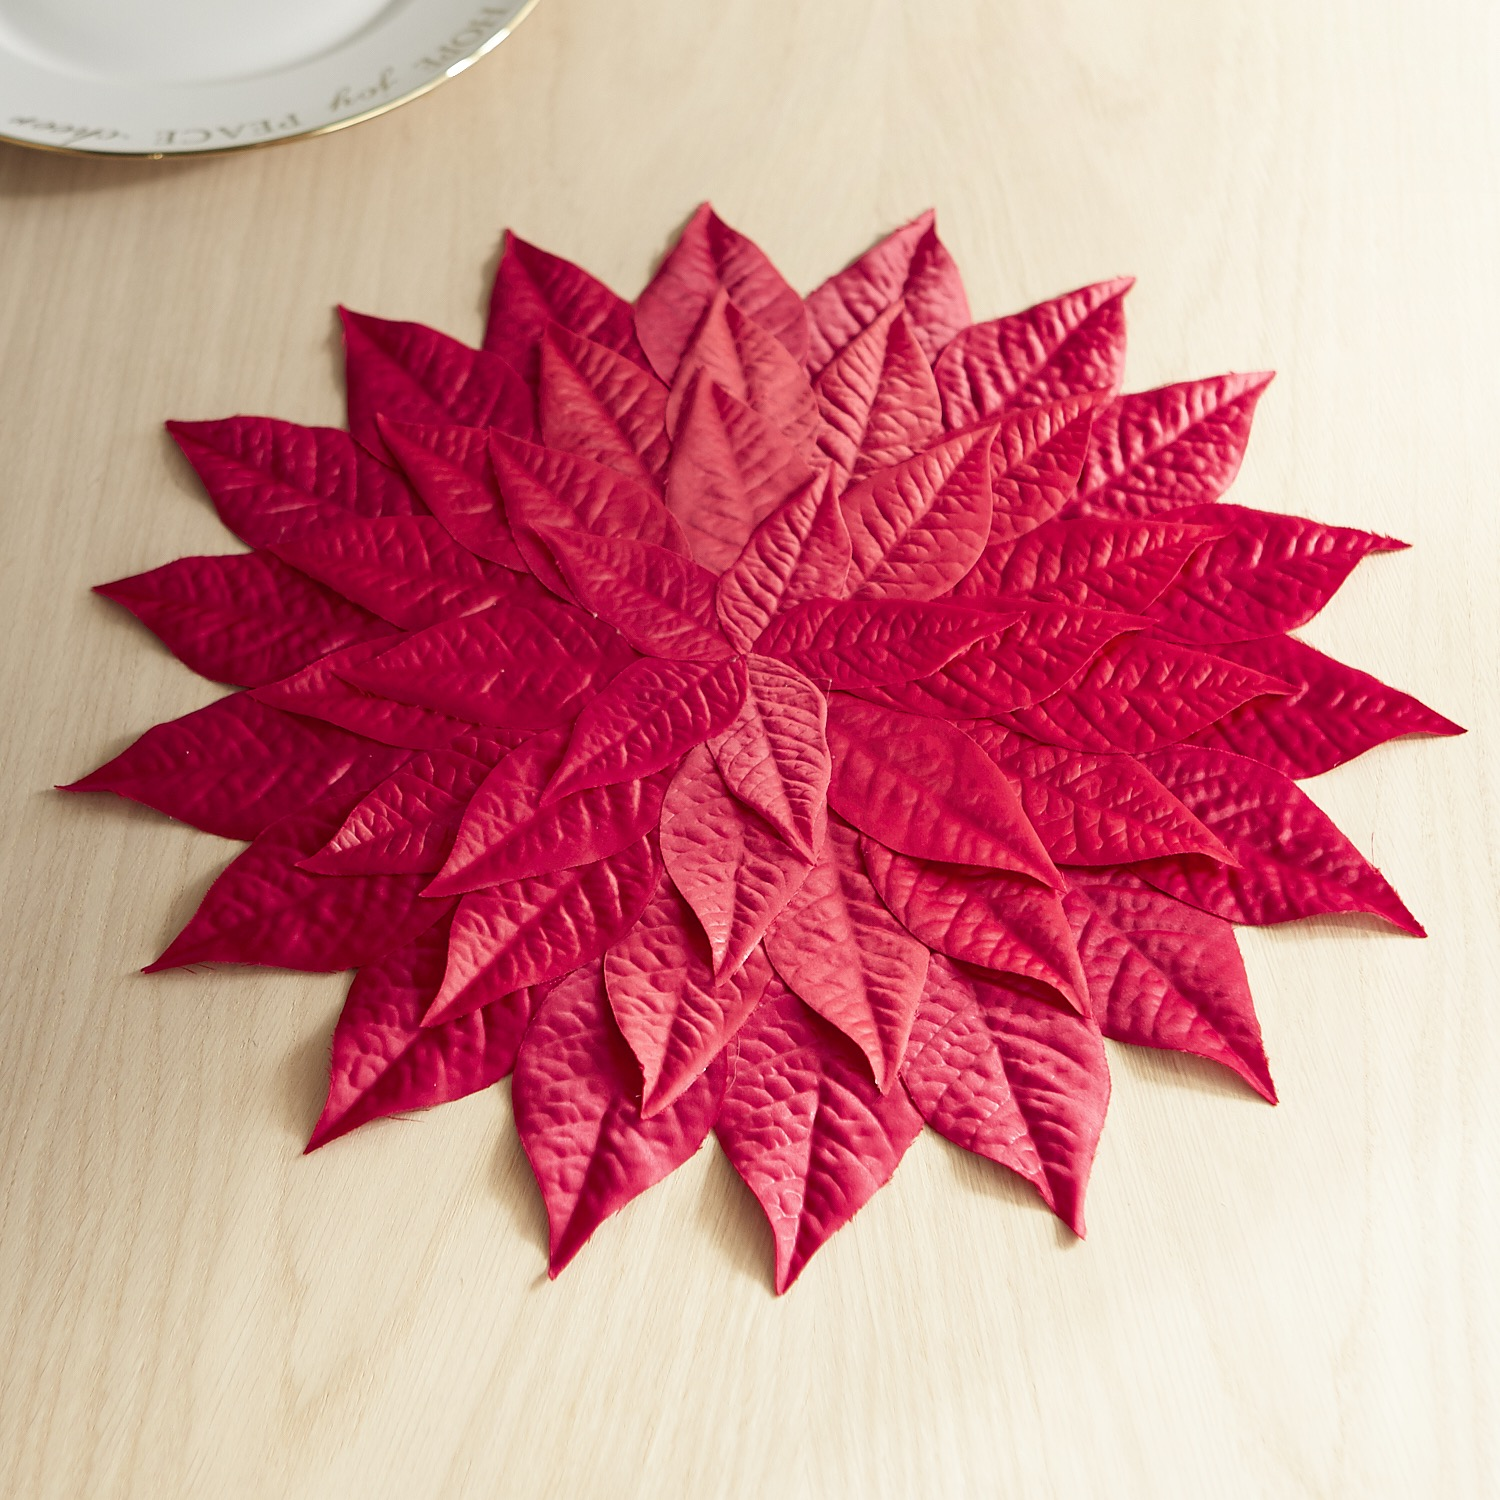 Faux Poinsettia Leaves Placemat